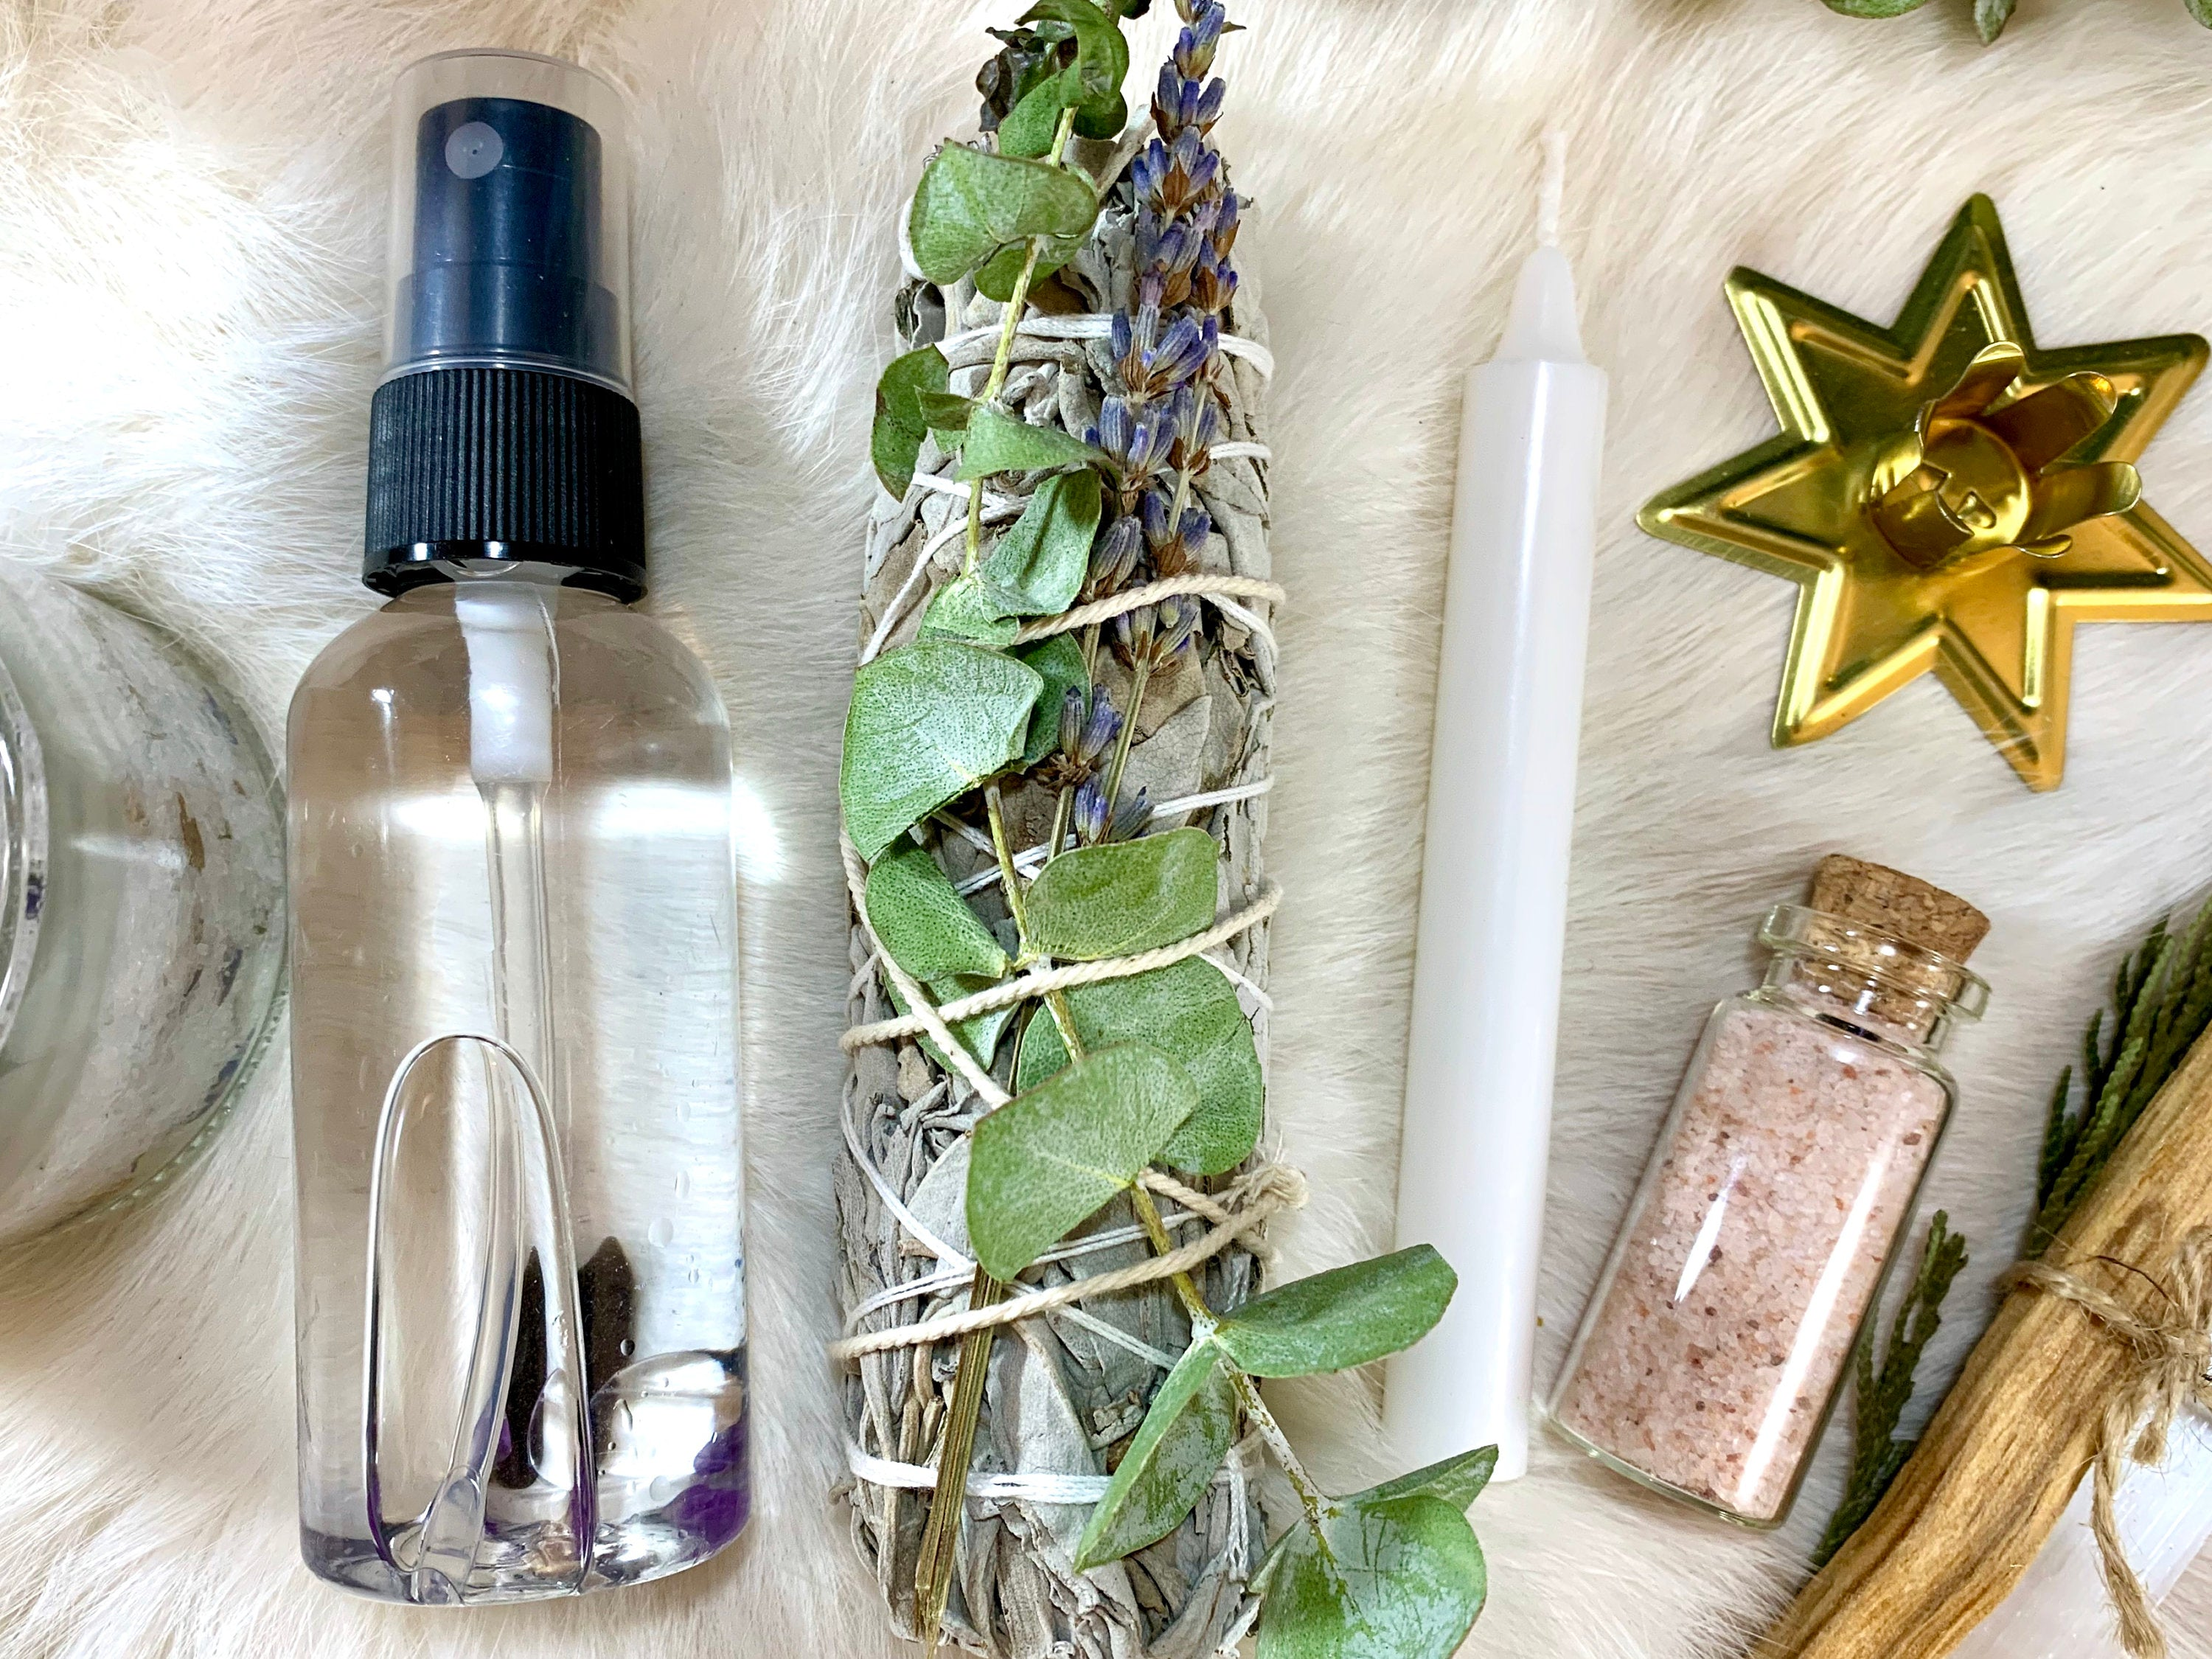 SAGE CLEANSING KIT